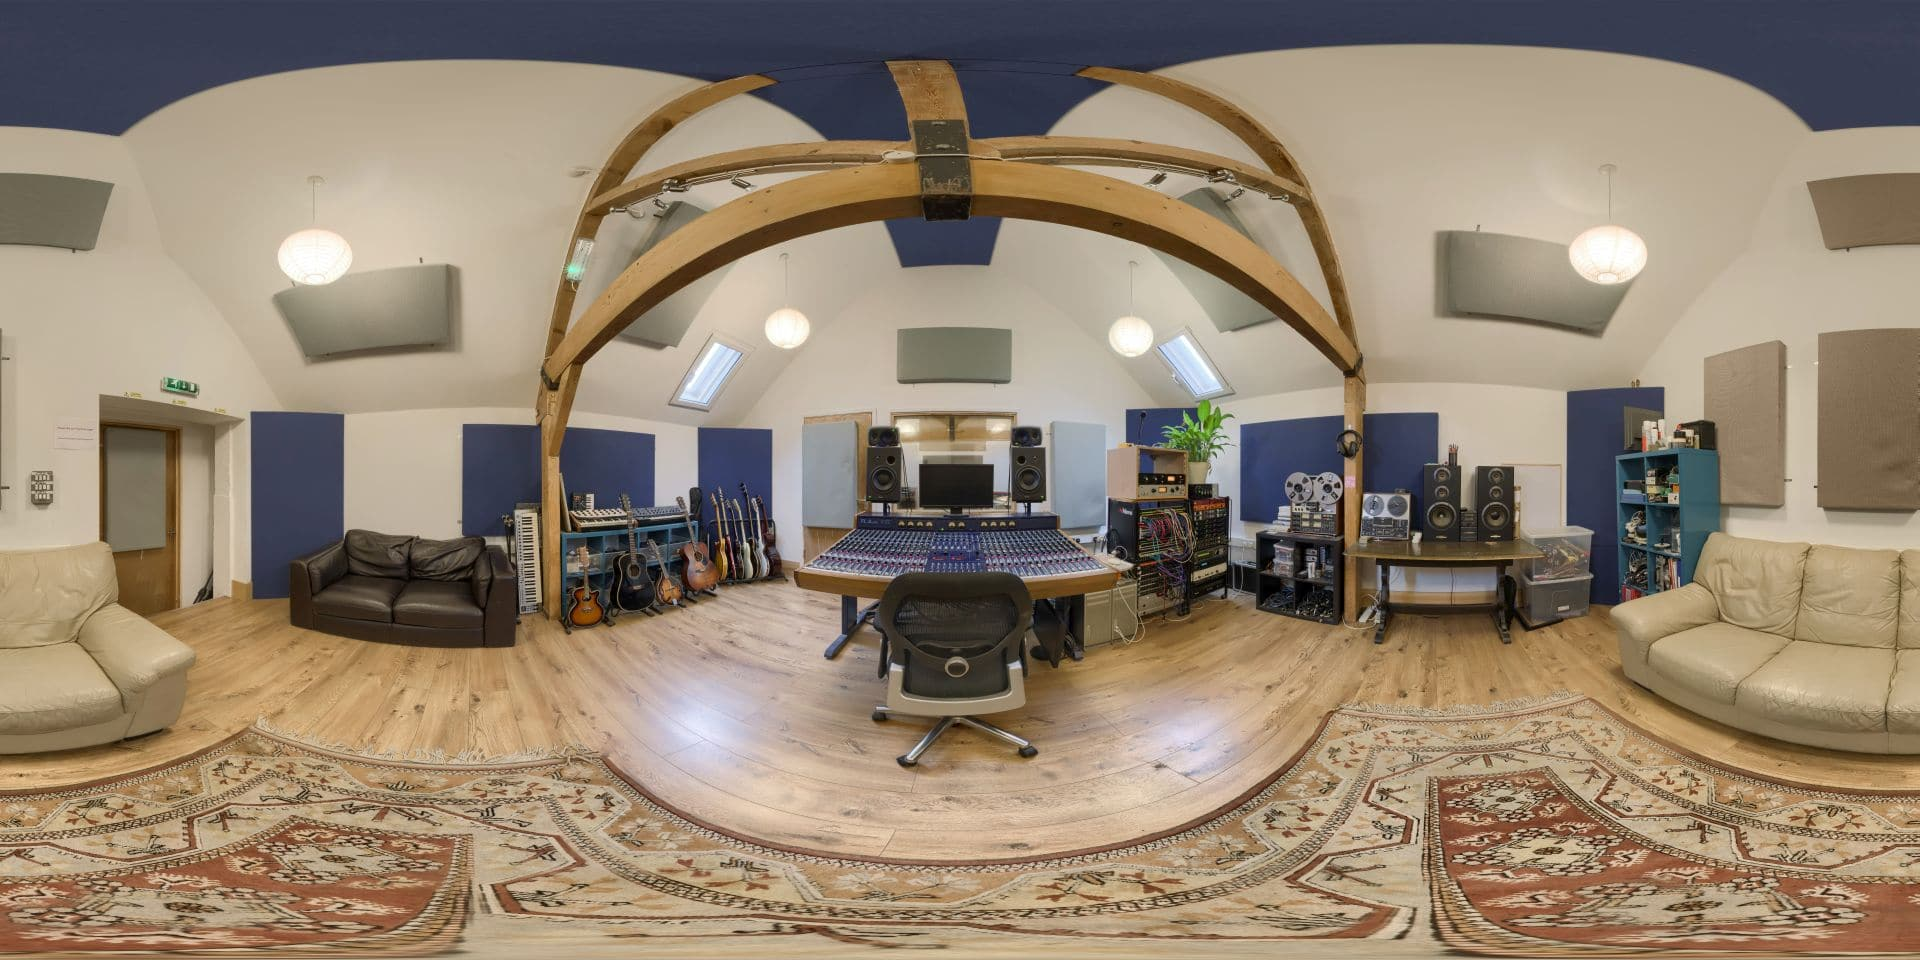 Brighton Road Recording Studios - 360 Virtual Tour